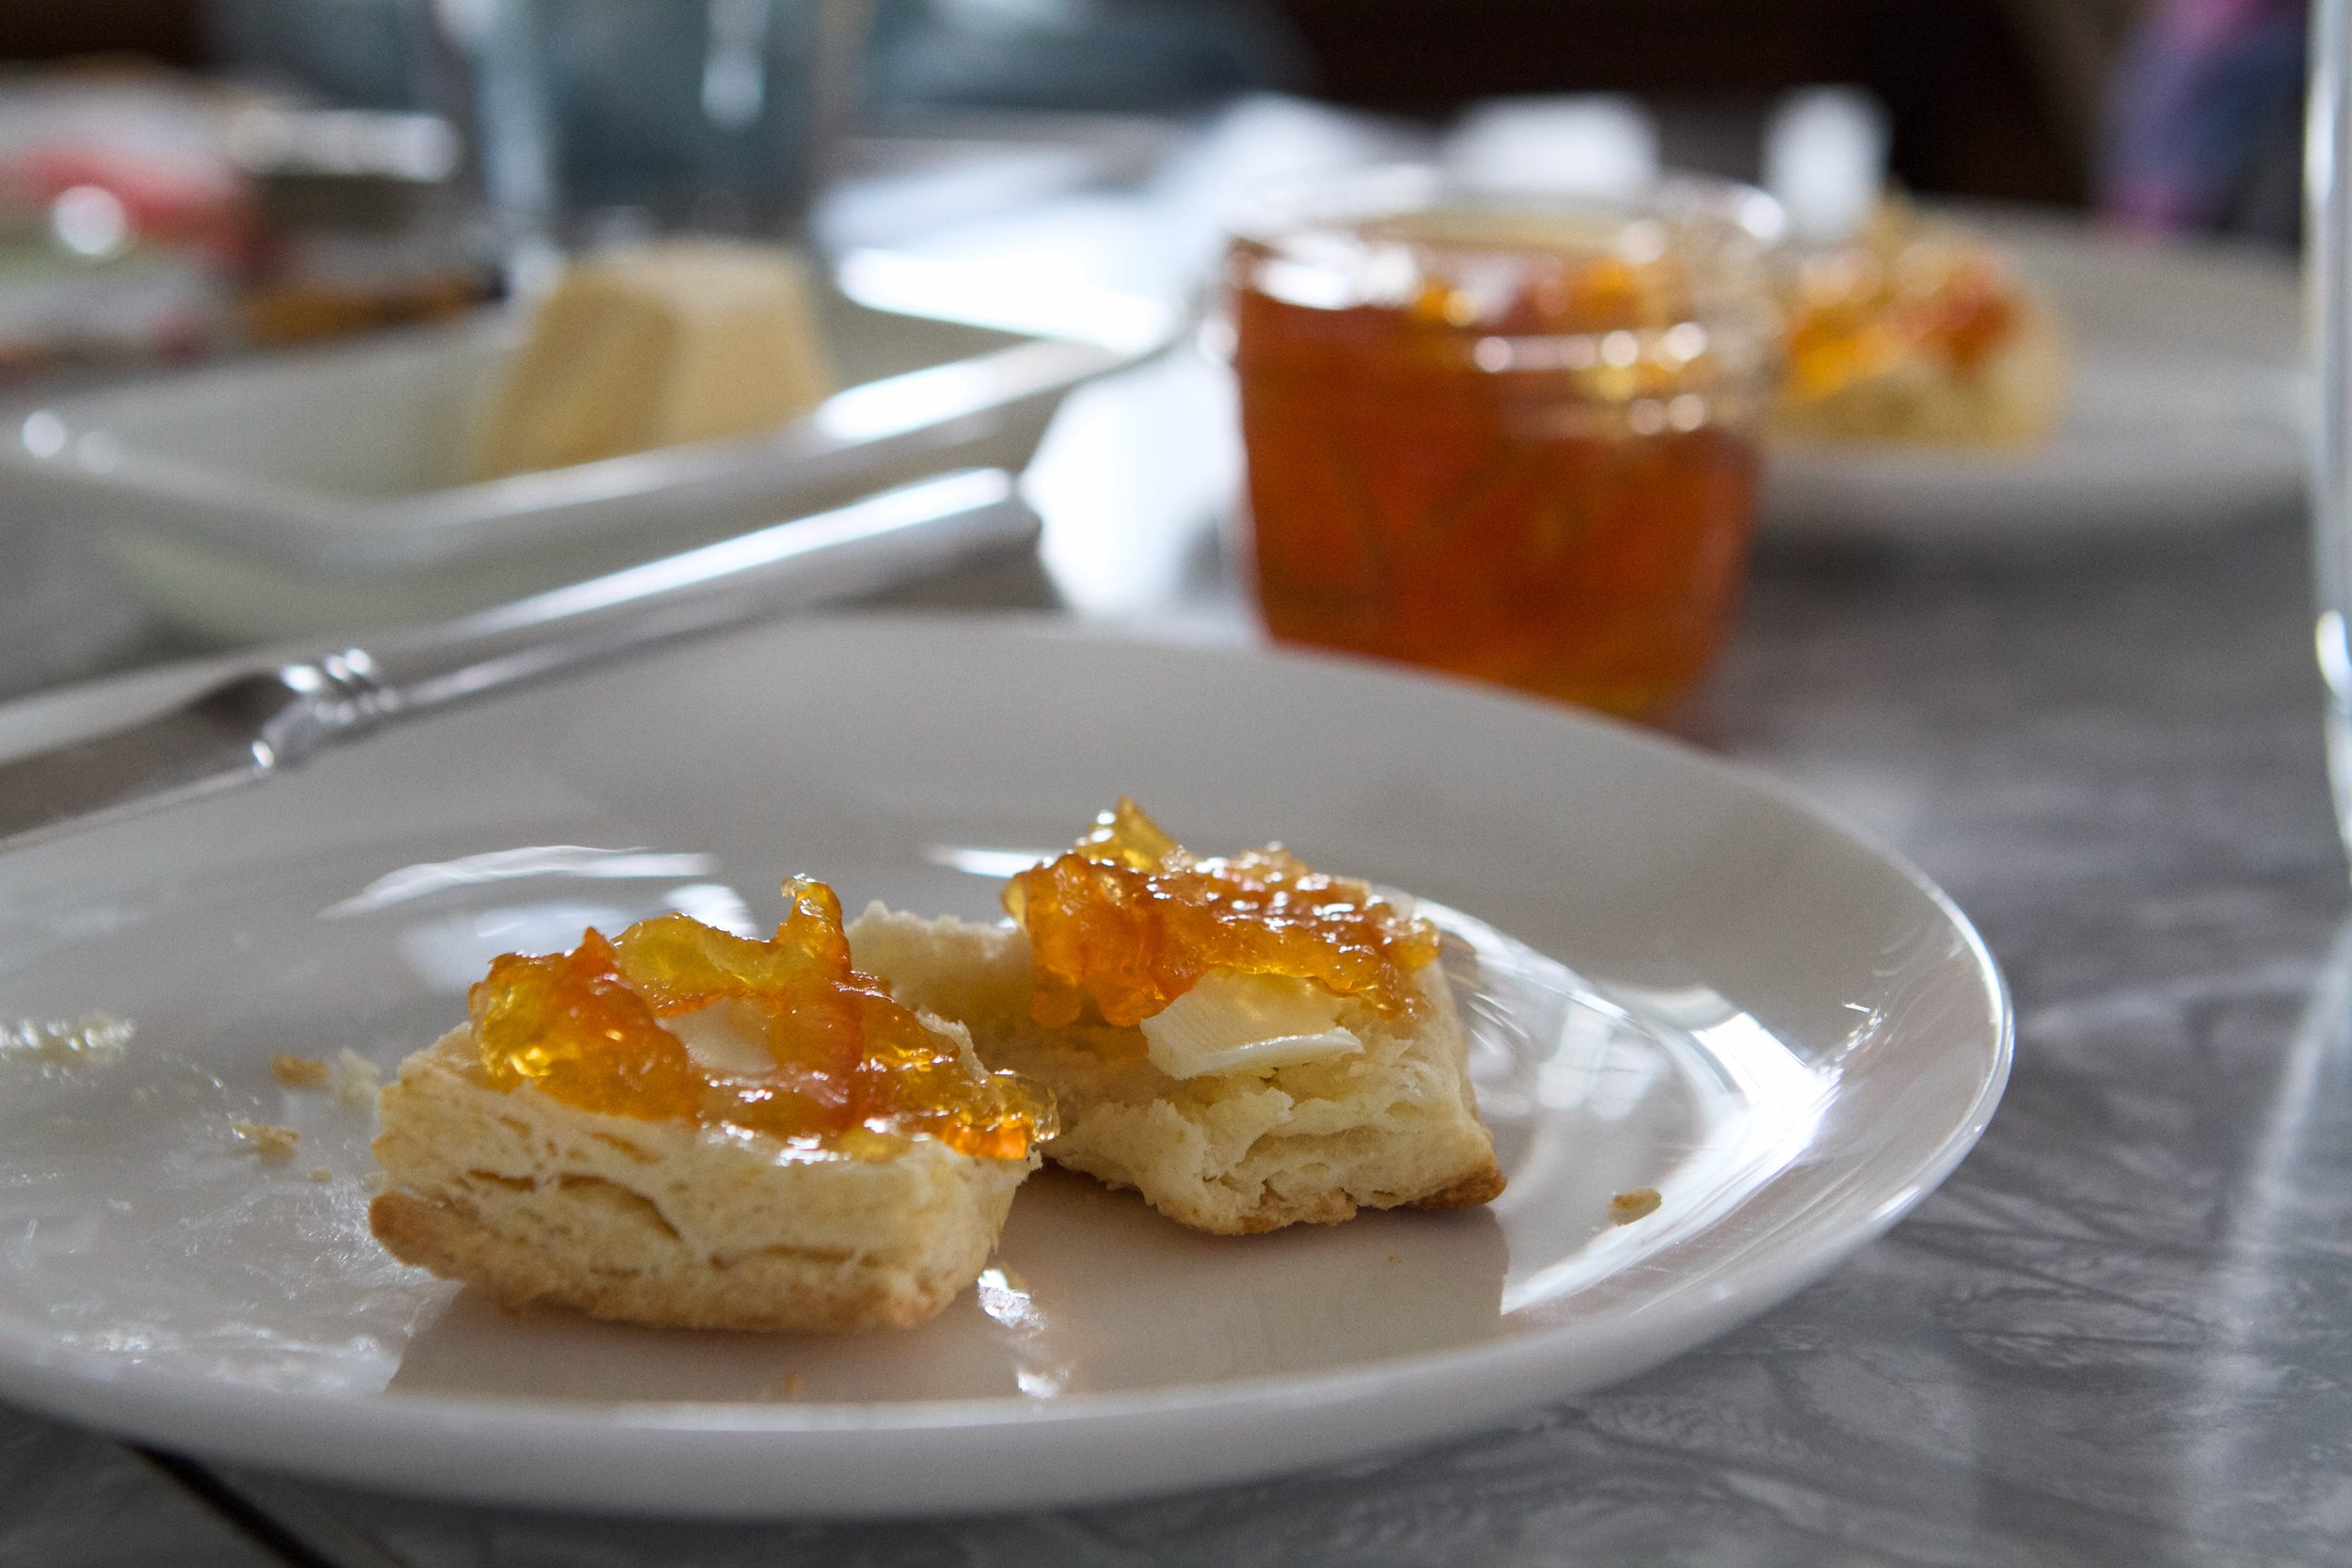 biscuits with marmalade